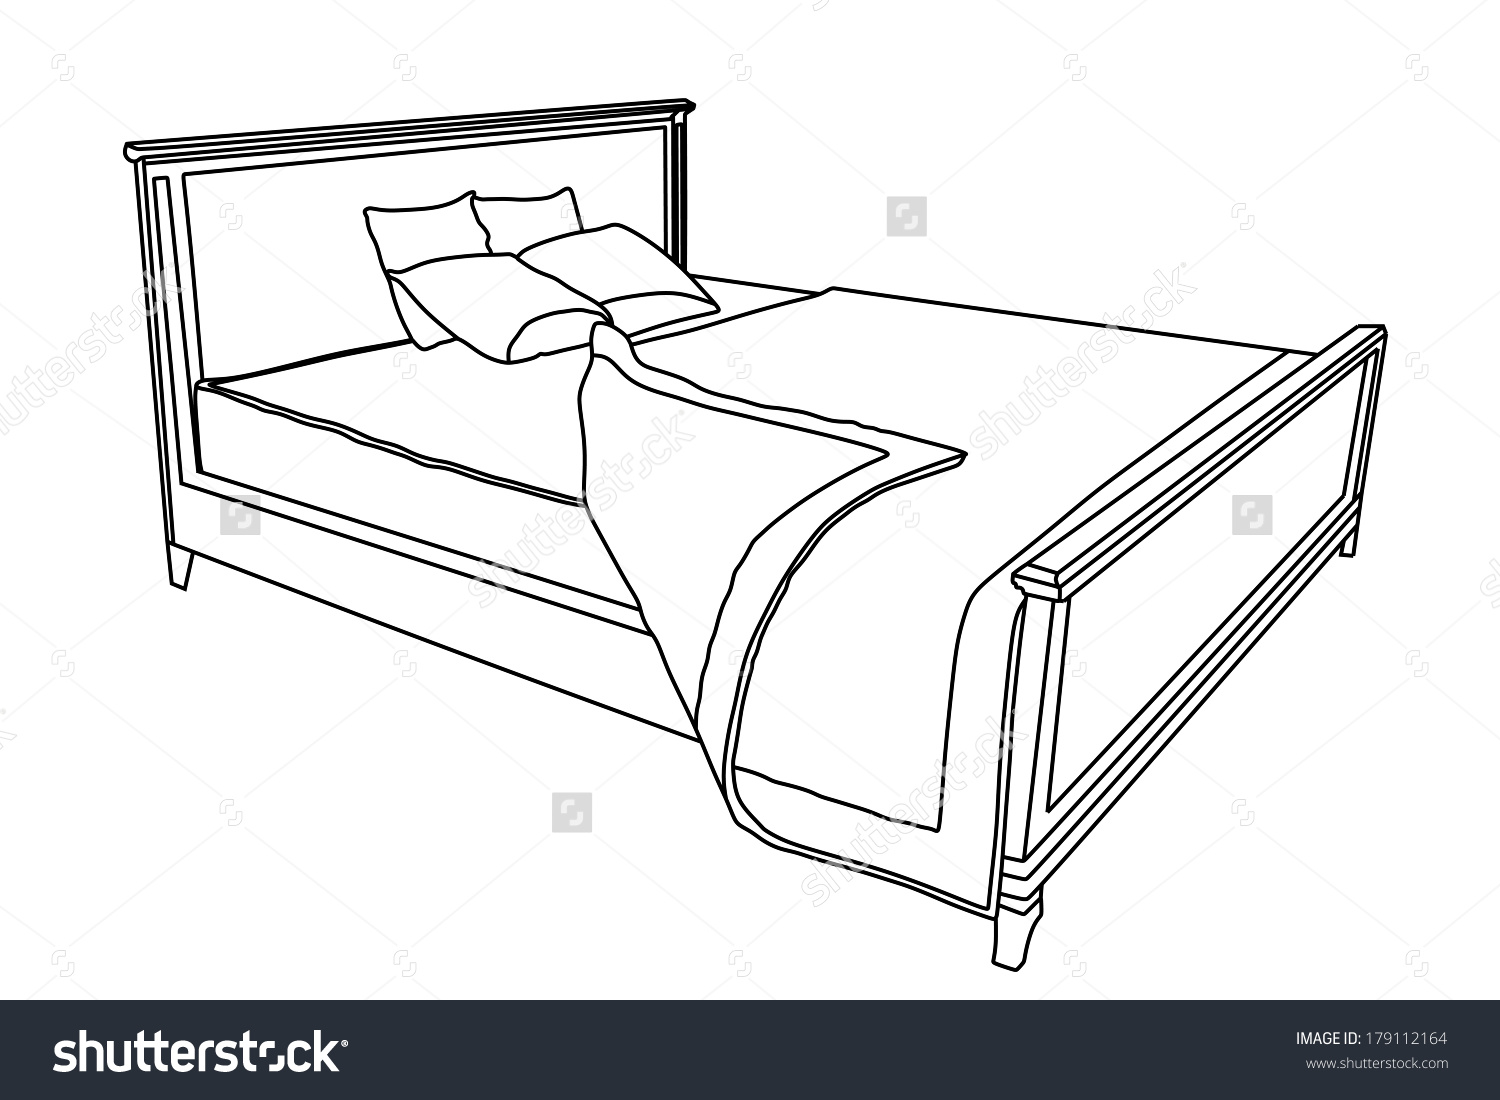 Bed Vector Icon Bedspread Isolated On Stock Vector 179112164.